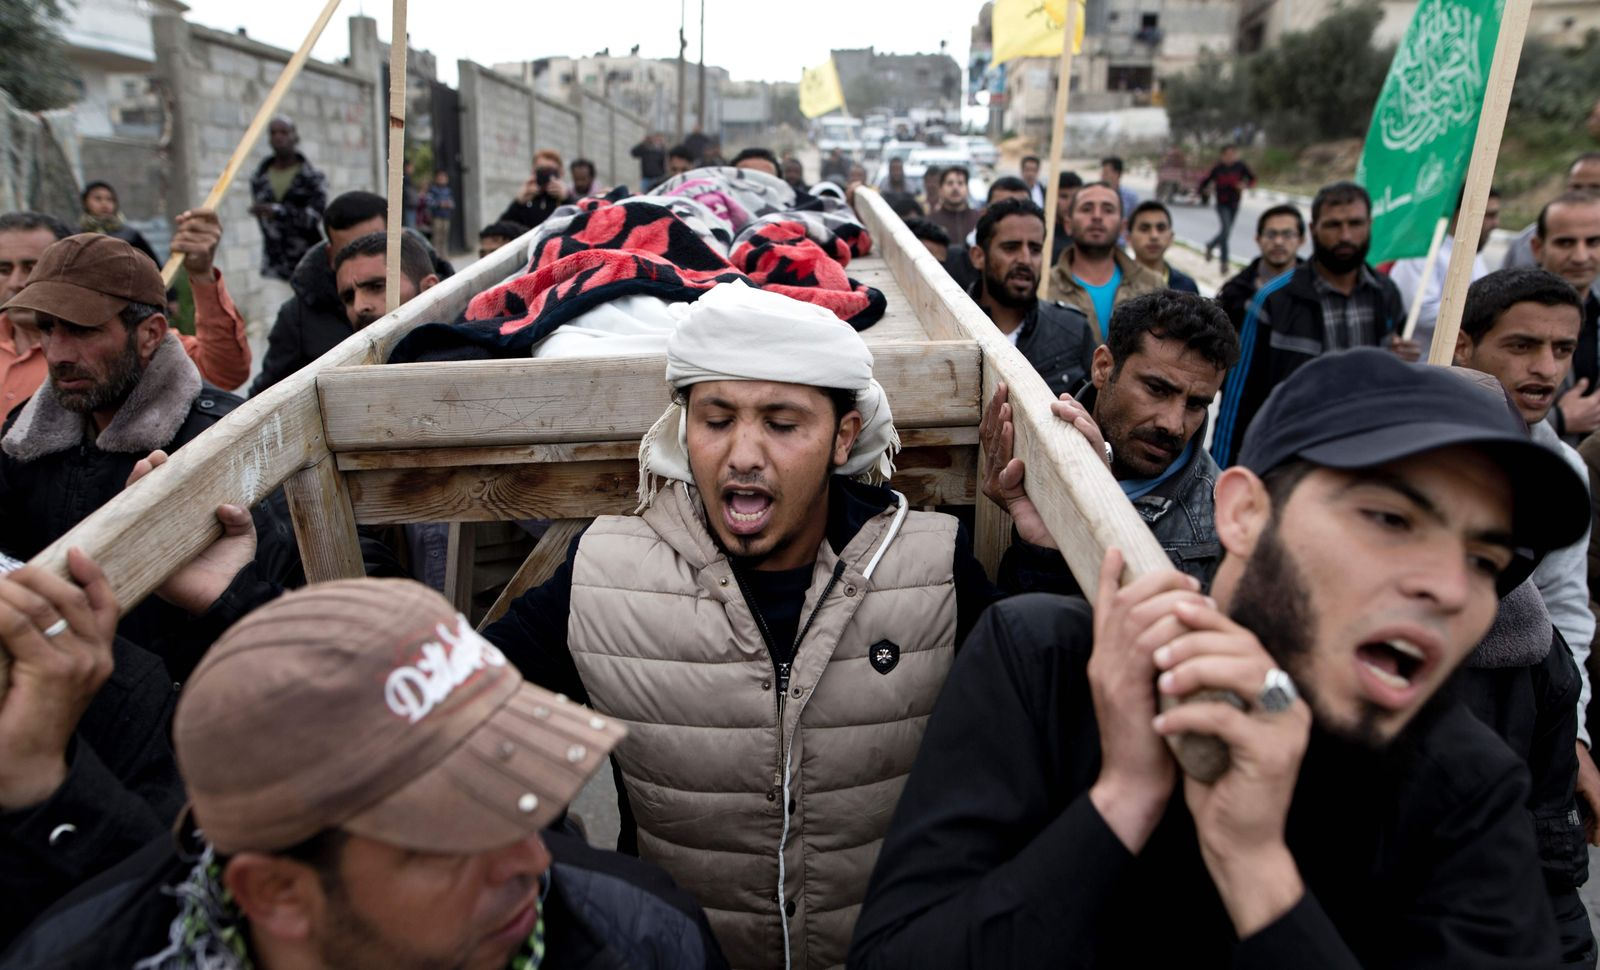 PALESTINIAN-ISRAEL-FUNERAL-CONFLICT